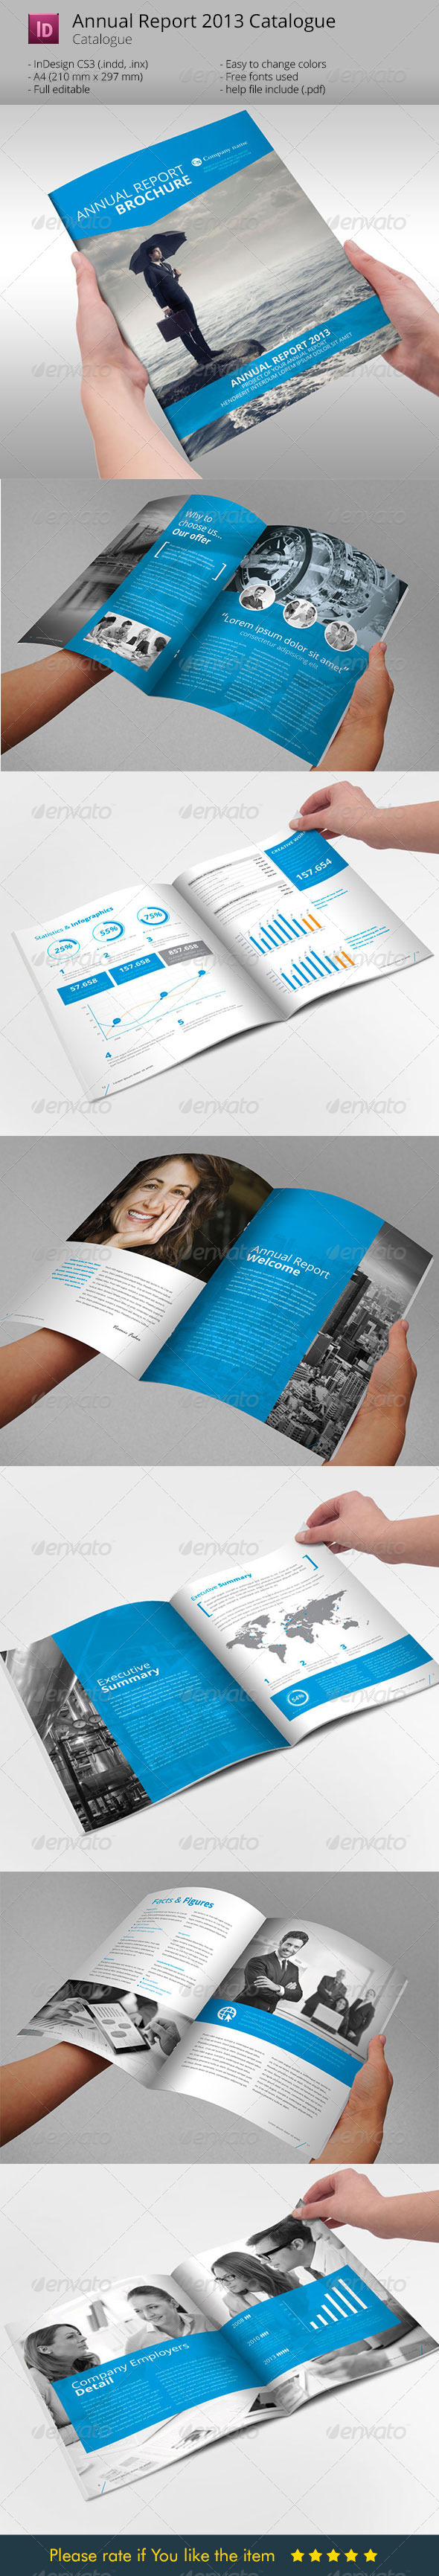 indesign template free brochure - annual report brochure indesign template by braxas